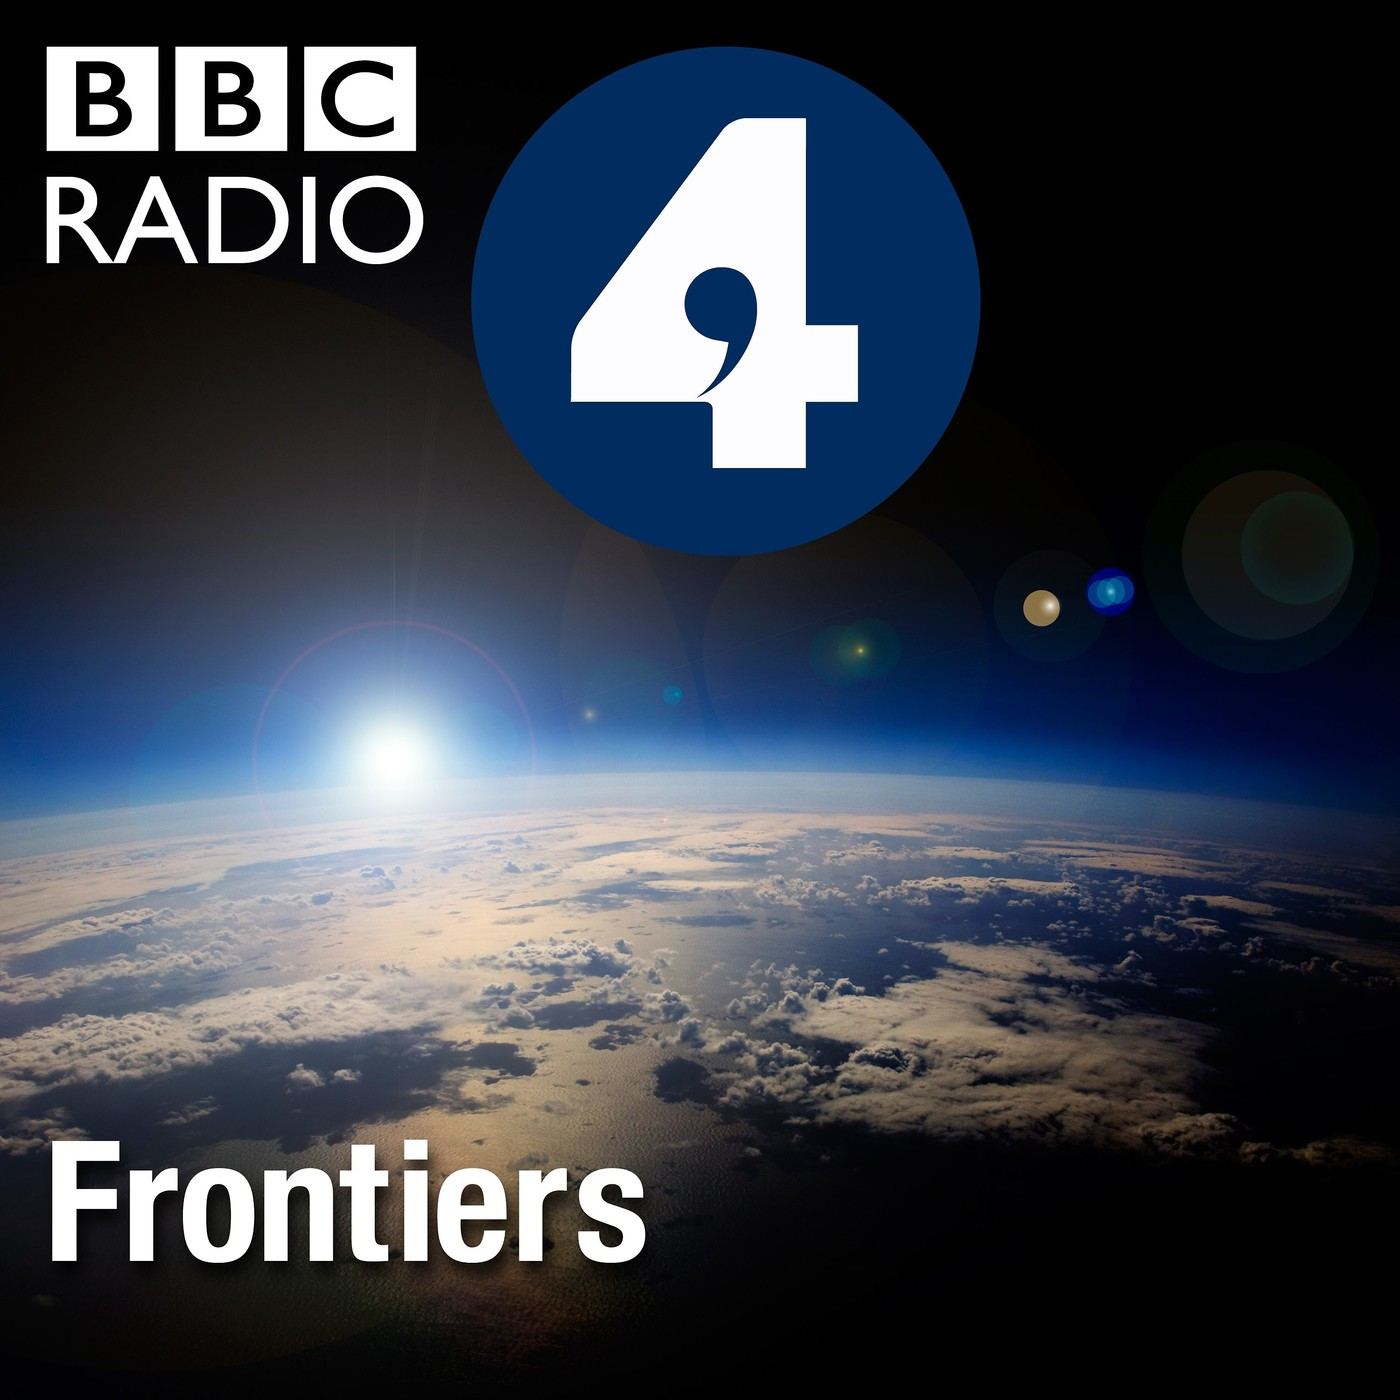 BBC-Frontiers